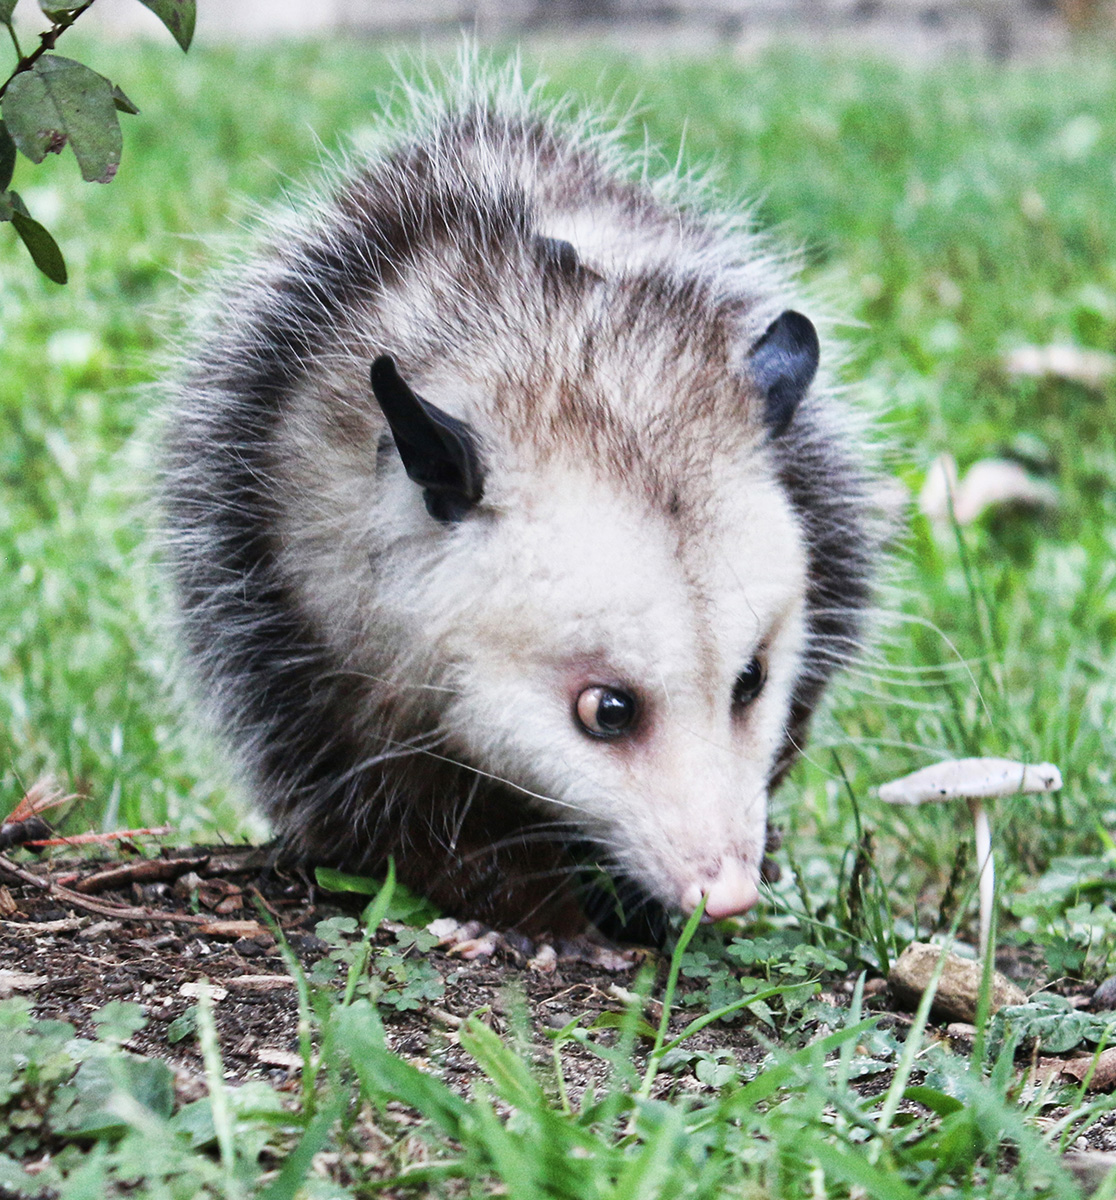 virginia opossum cr kelly kiefer